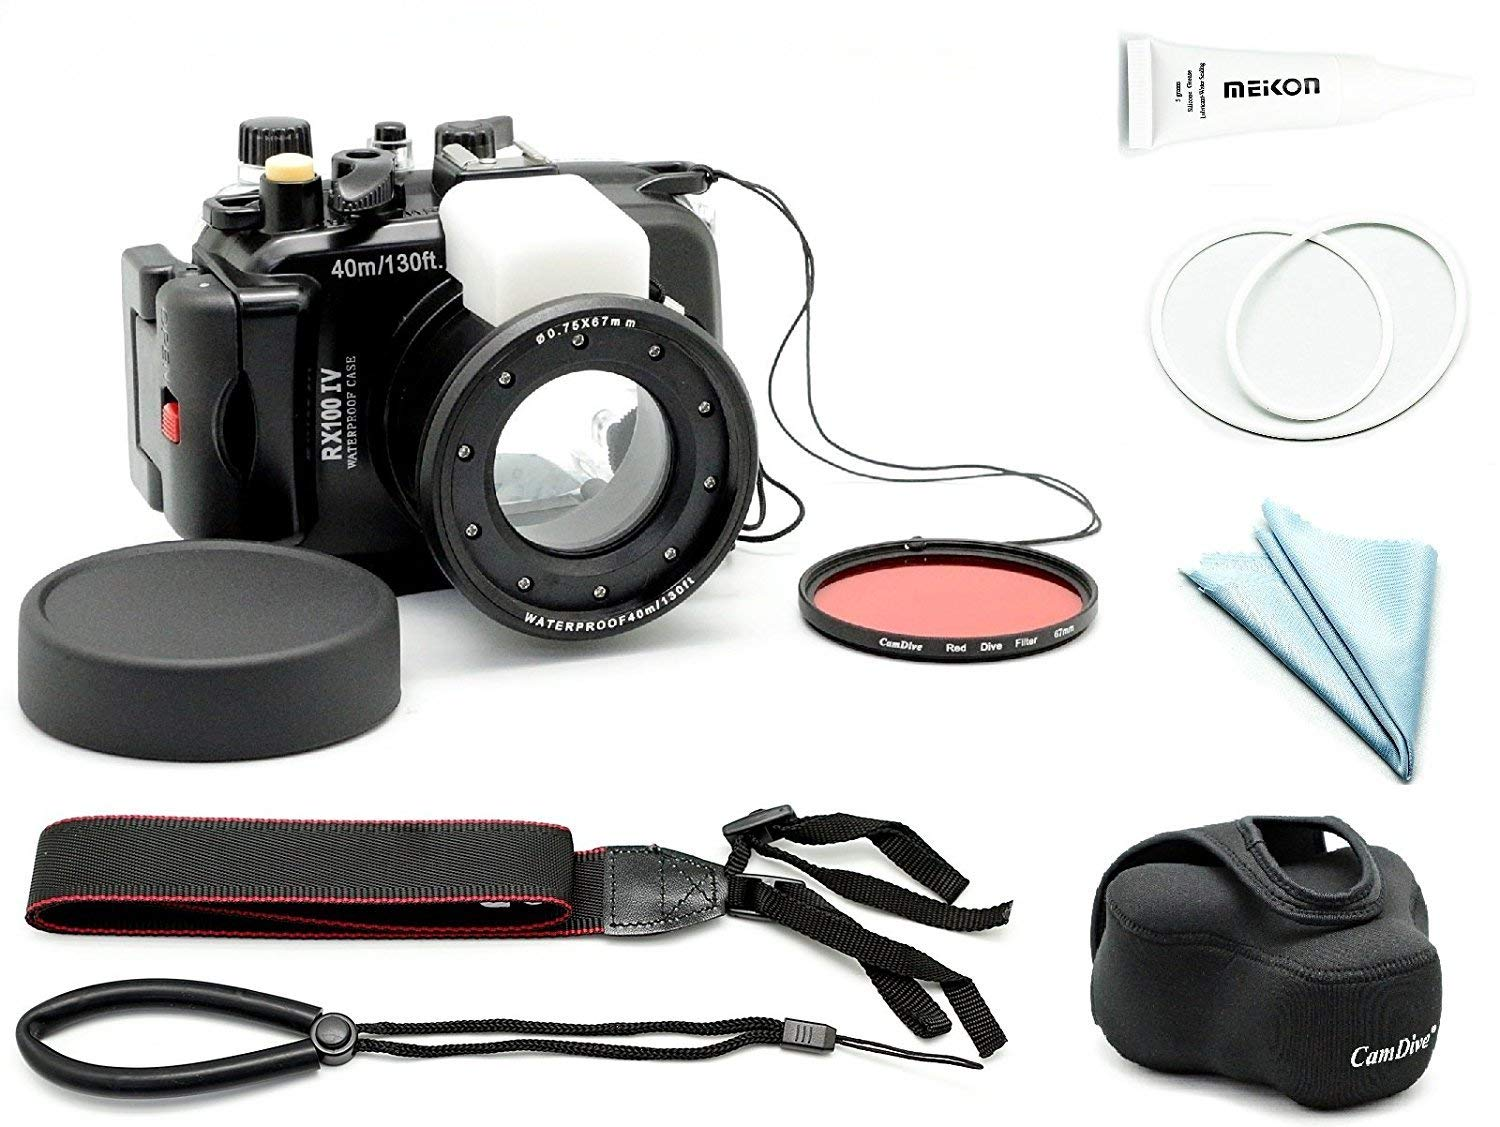 CamDive 40M/130FT Waterproof Underwater Camera Housing for Sony DSC RX100 IV / RX100 III / RX100 V (Housing+Cover+Filter)